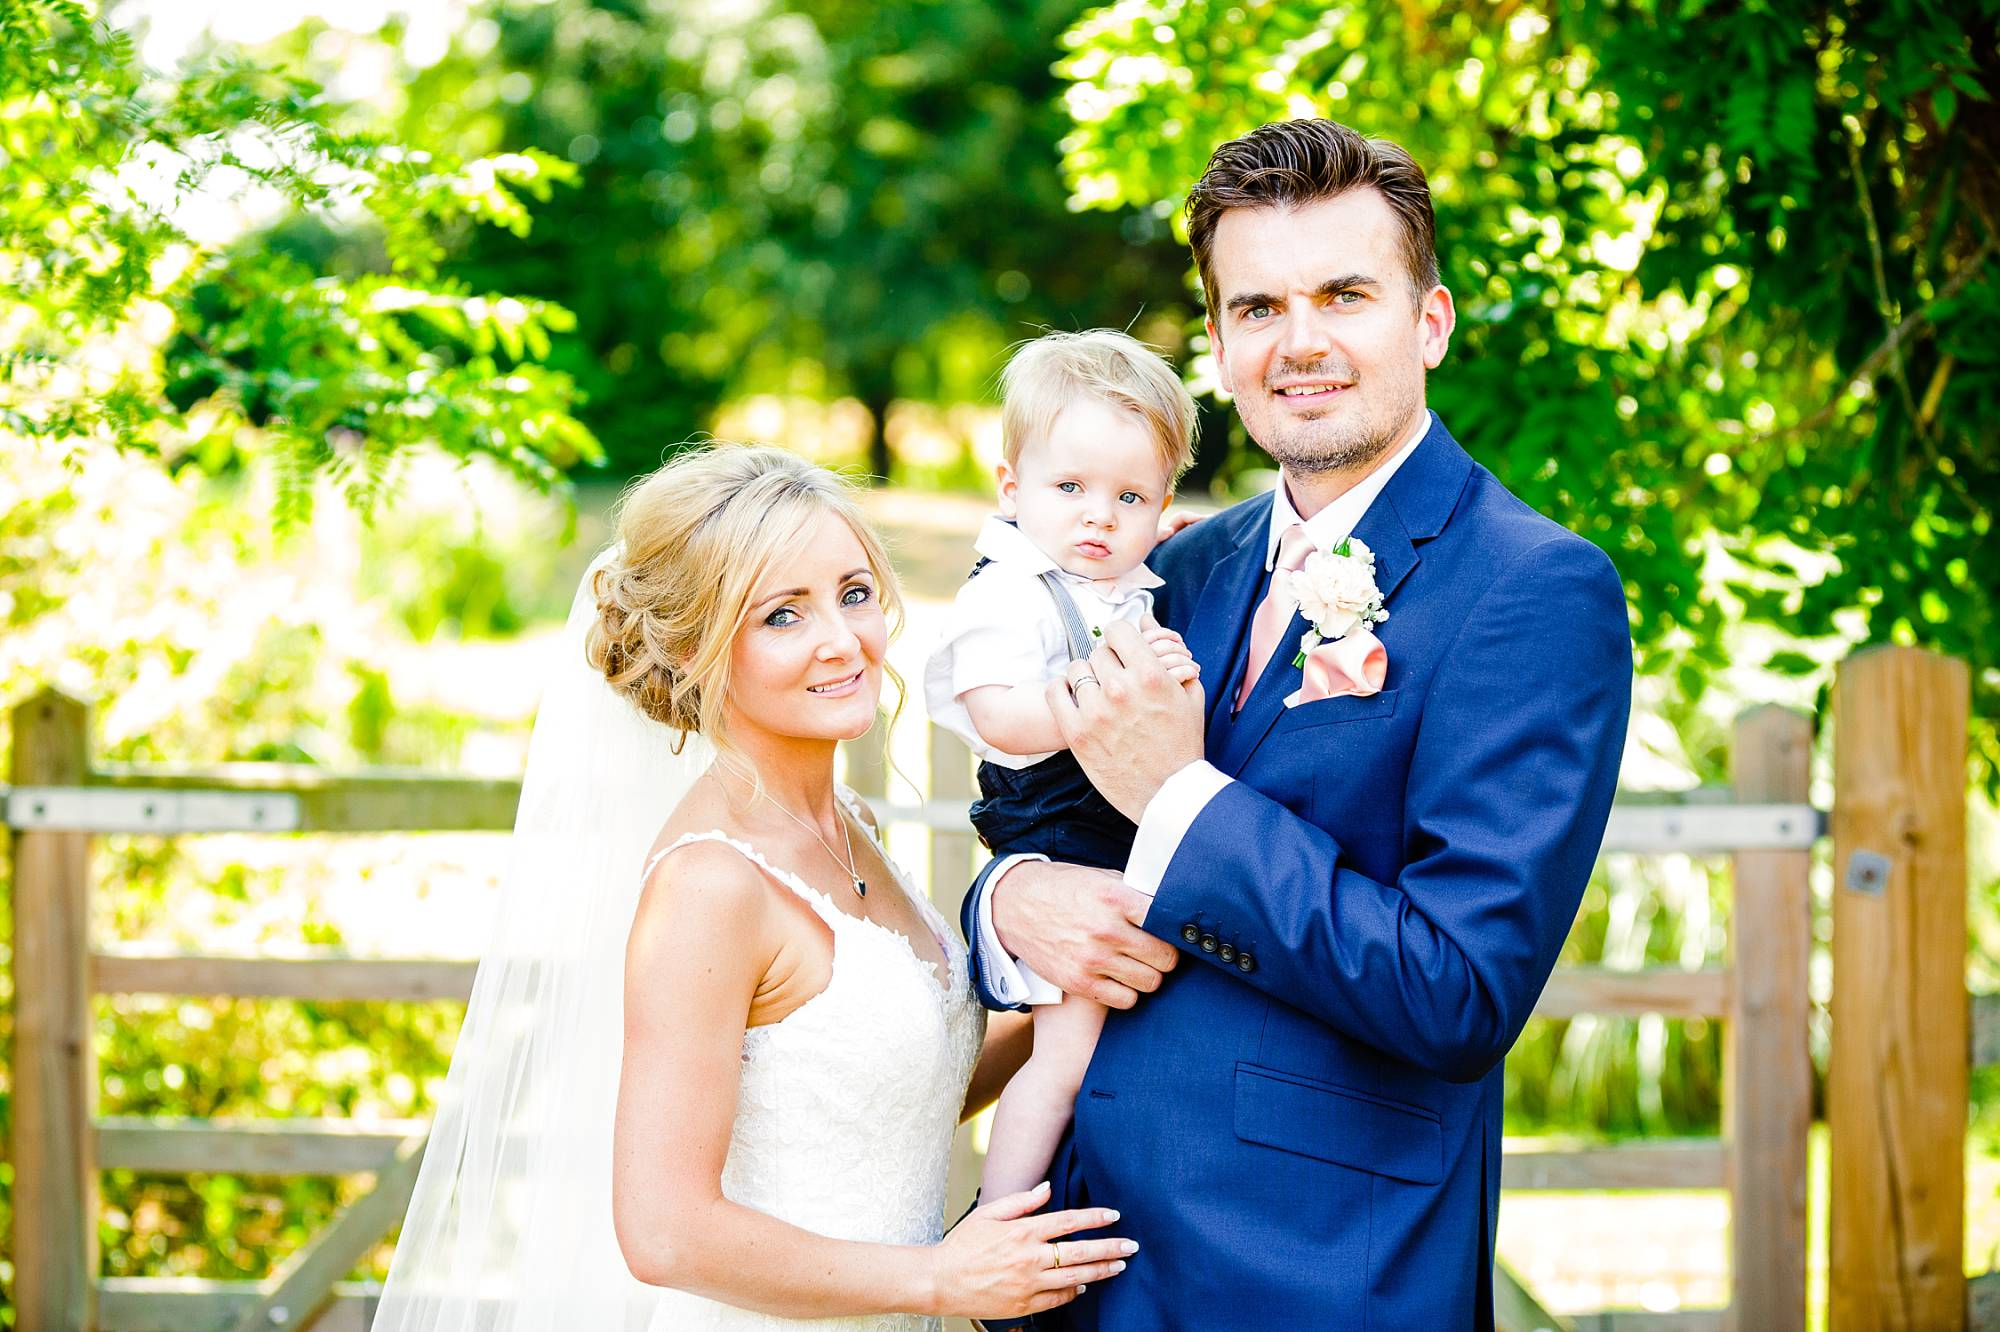 Houchins Essex Wedding Photographer_0047.jpg